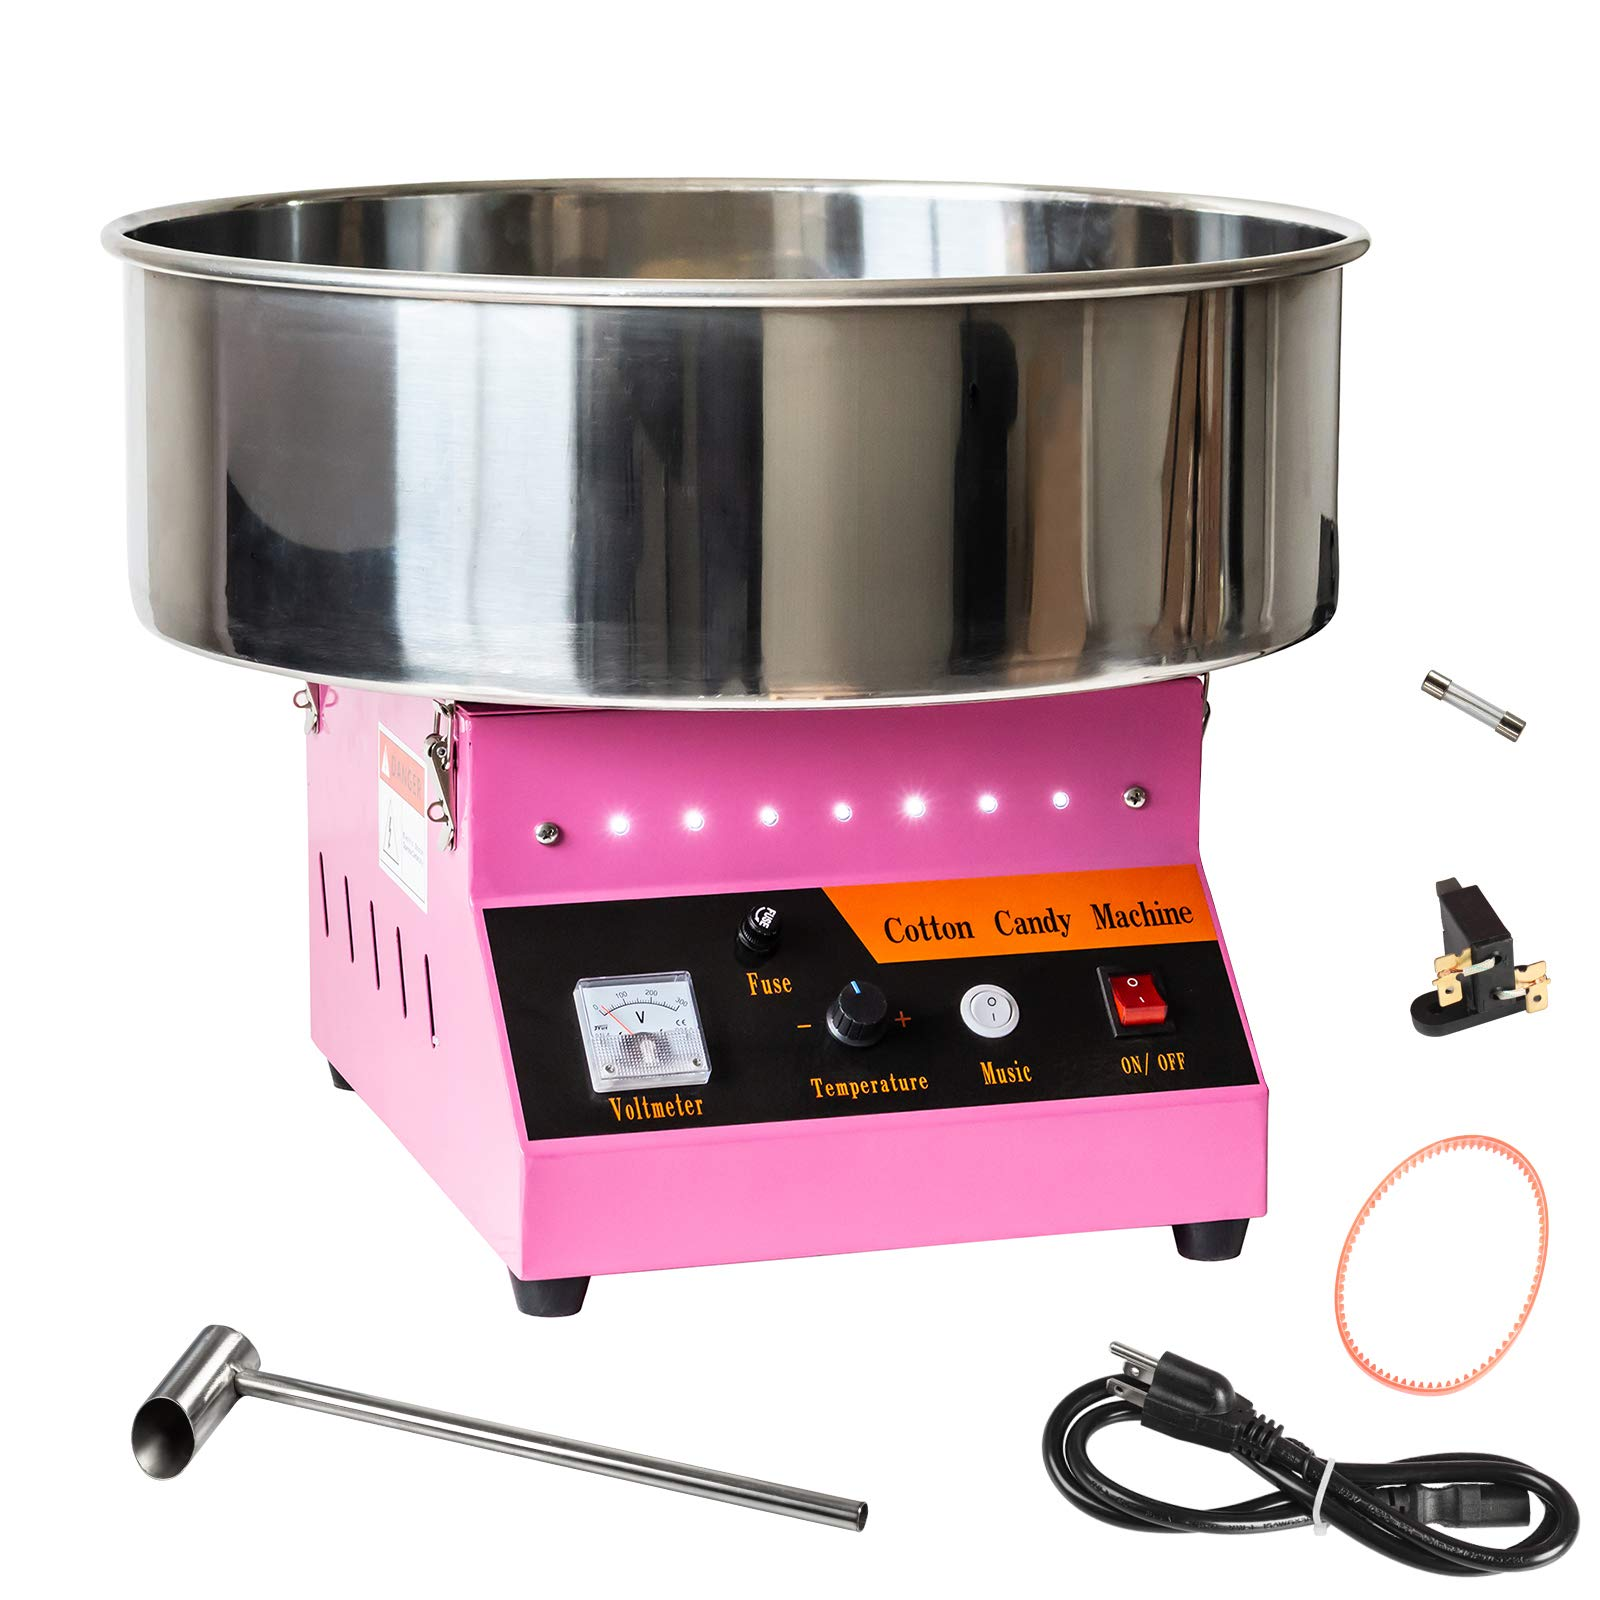 AJO Electric Commercial Quality Cotton Candy Machine and Candy Floss Maker (Pink)